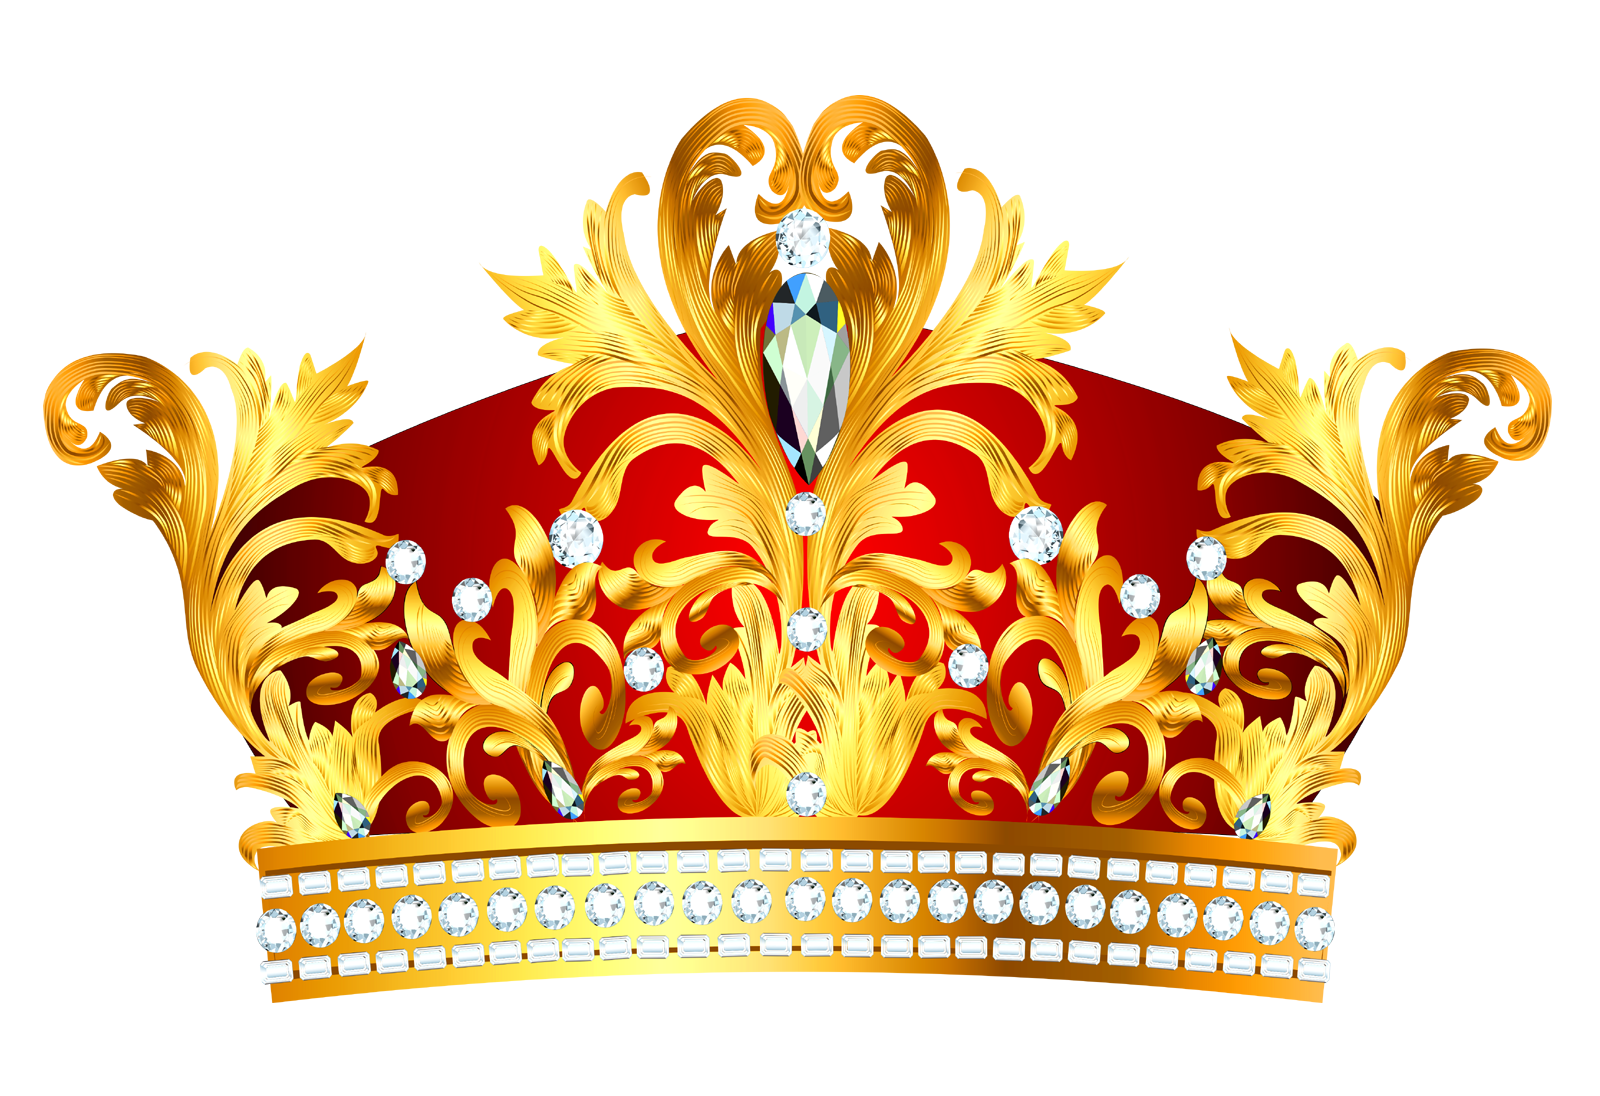 Royal princess crown clipart free download svg freeuse library Crown transparent crown images free download princess queen princess ... svg freeuse library